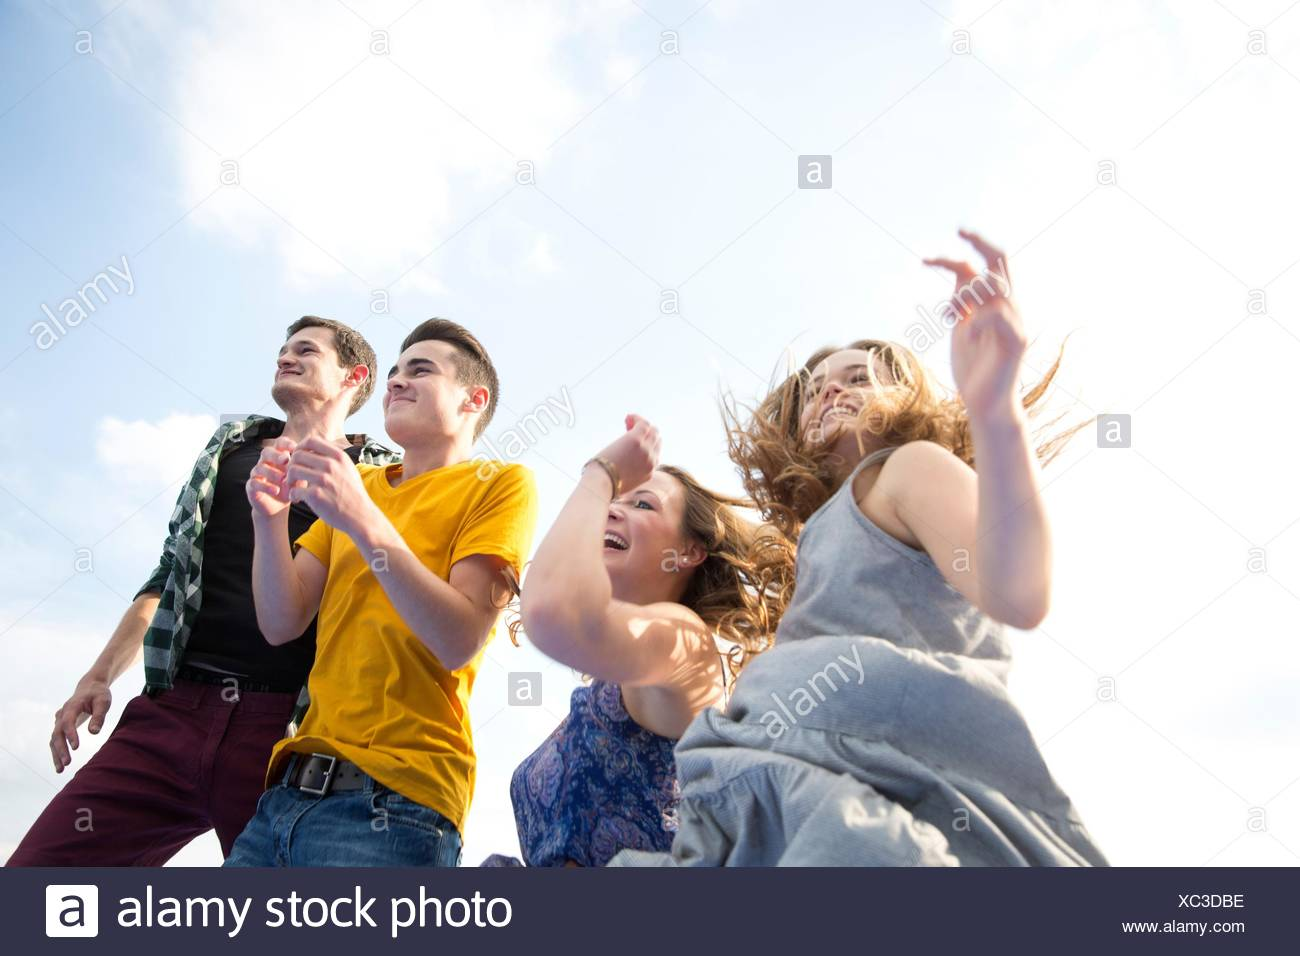 Group of young adults, running, outdoors, low angle view - Stock Image